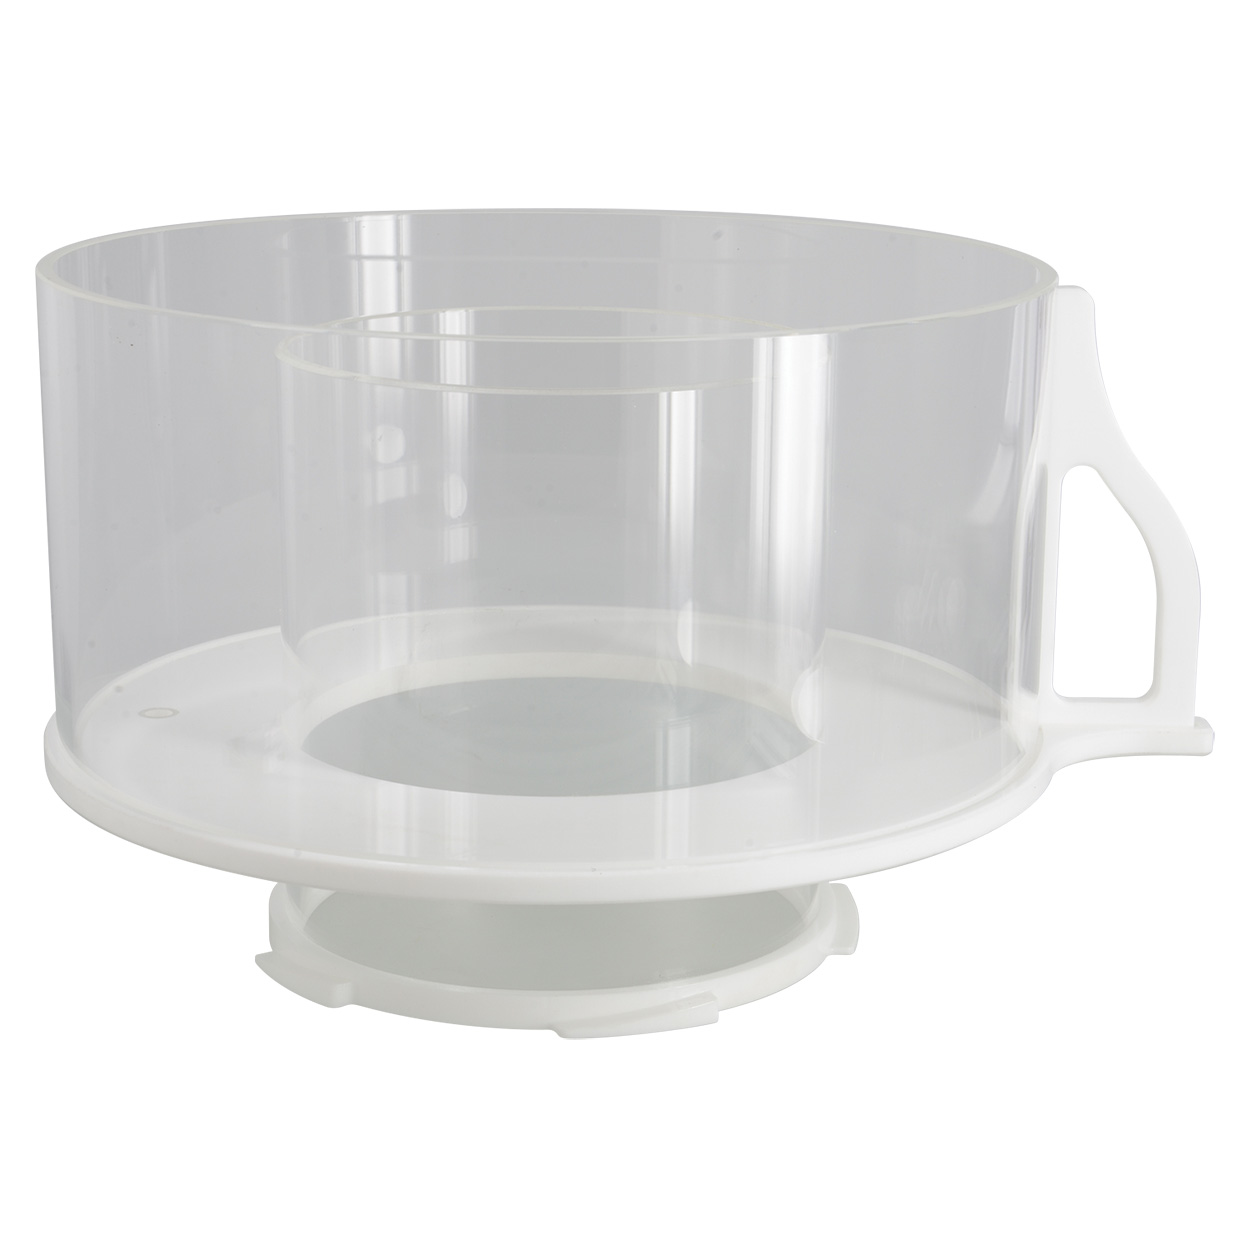 JNS Replacement Collection Cup for the CO-5 Protein Skimmer 38311